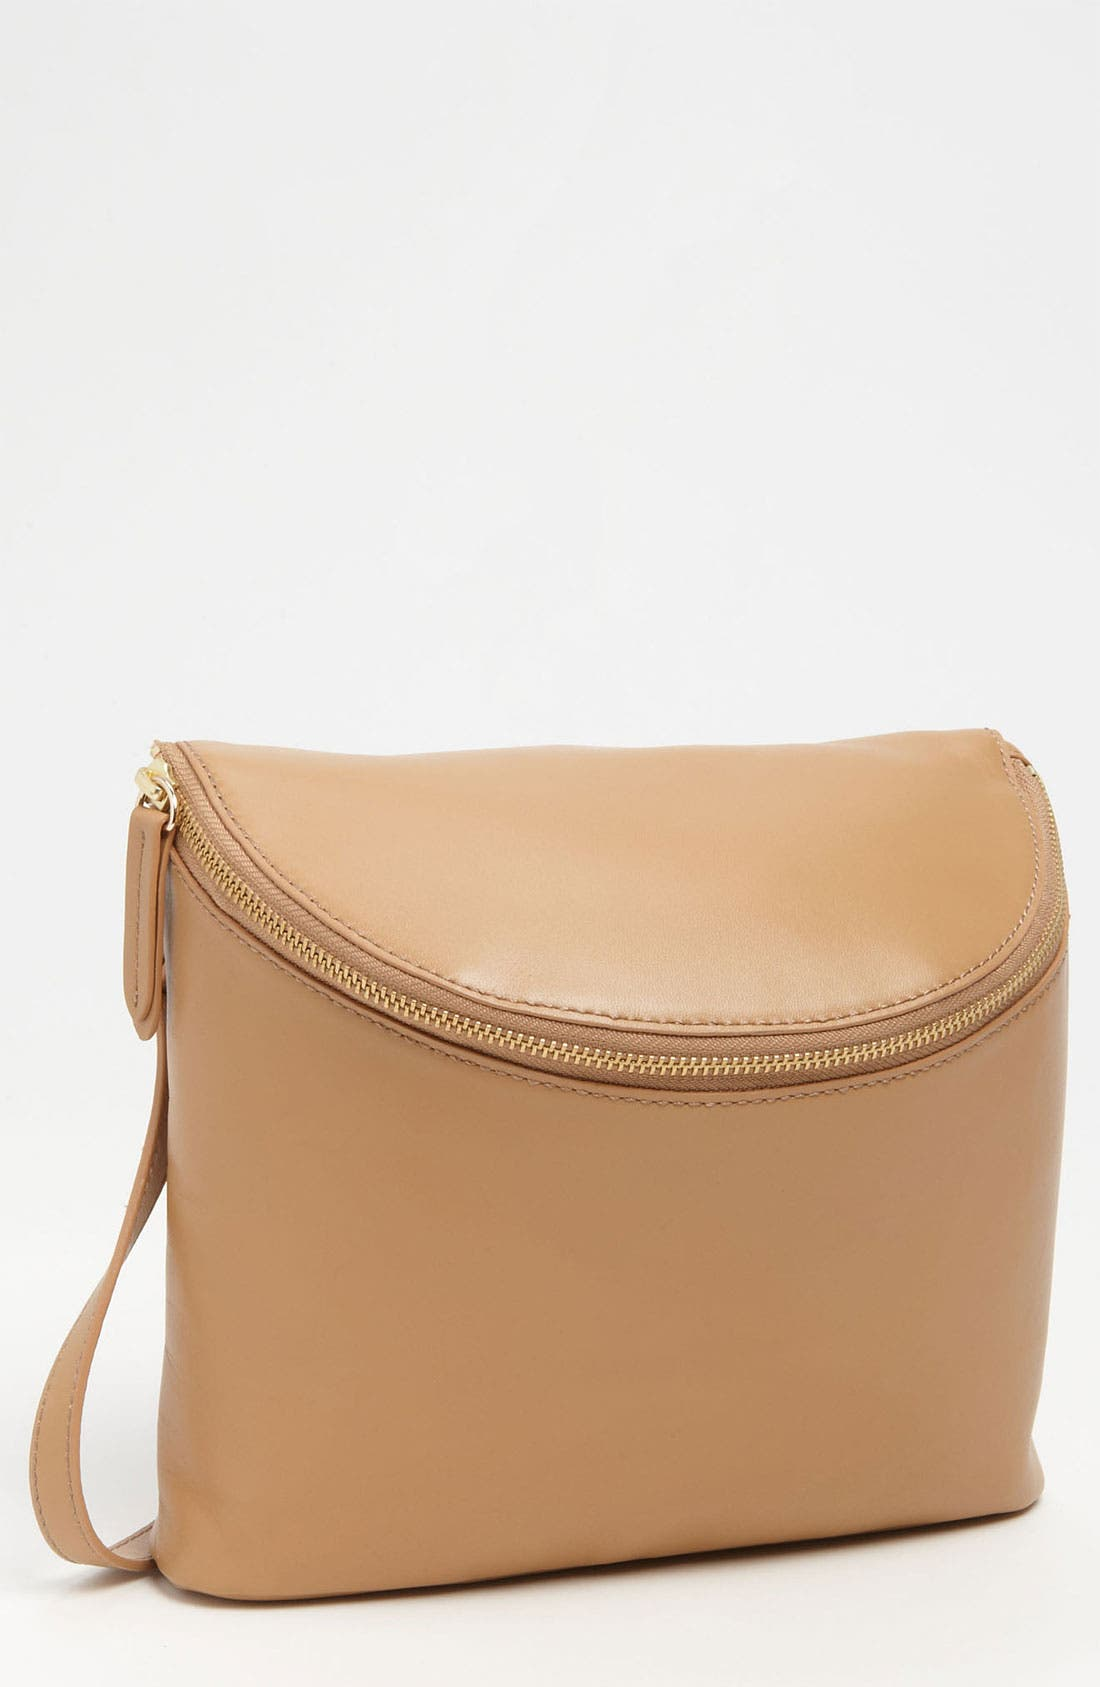 Alternate Image 1 Selected - Halogen® 'Mia' Leather Crossbody Bucket Bag